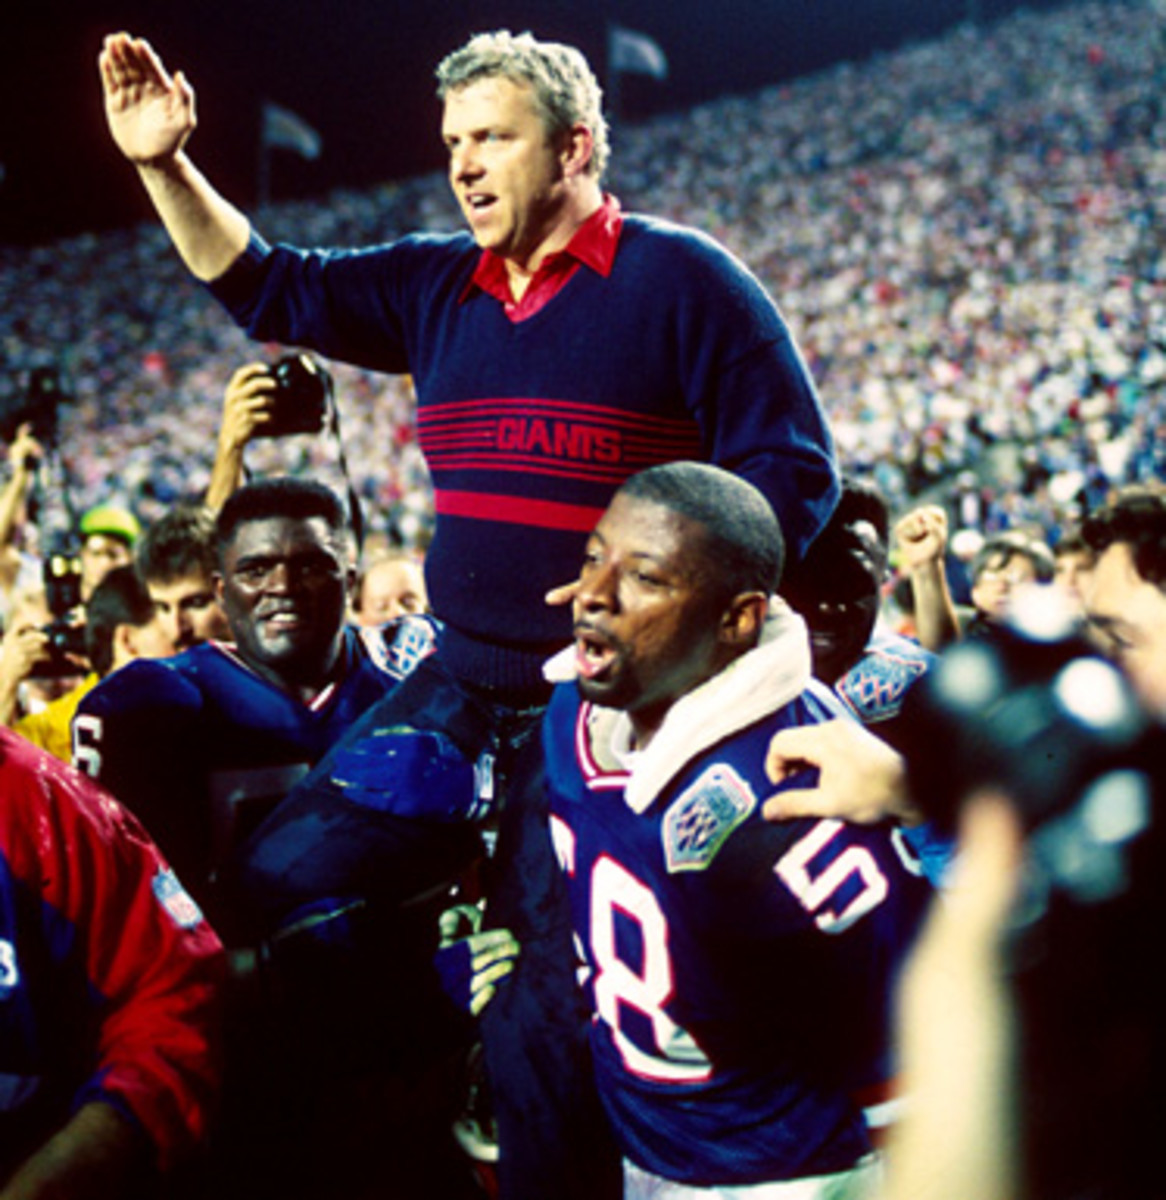 Head coach Bill Parcells of the New York Giants is carried off the sideline by Carl Banks, Lawrence Taylor, and others after a 20 to 19 win over the Buffalo Bills - Super Bowl XXV - Jan 27, 1991 Michael Zagaris/Getty Images